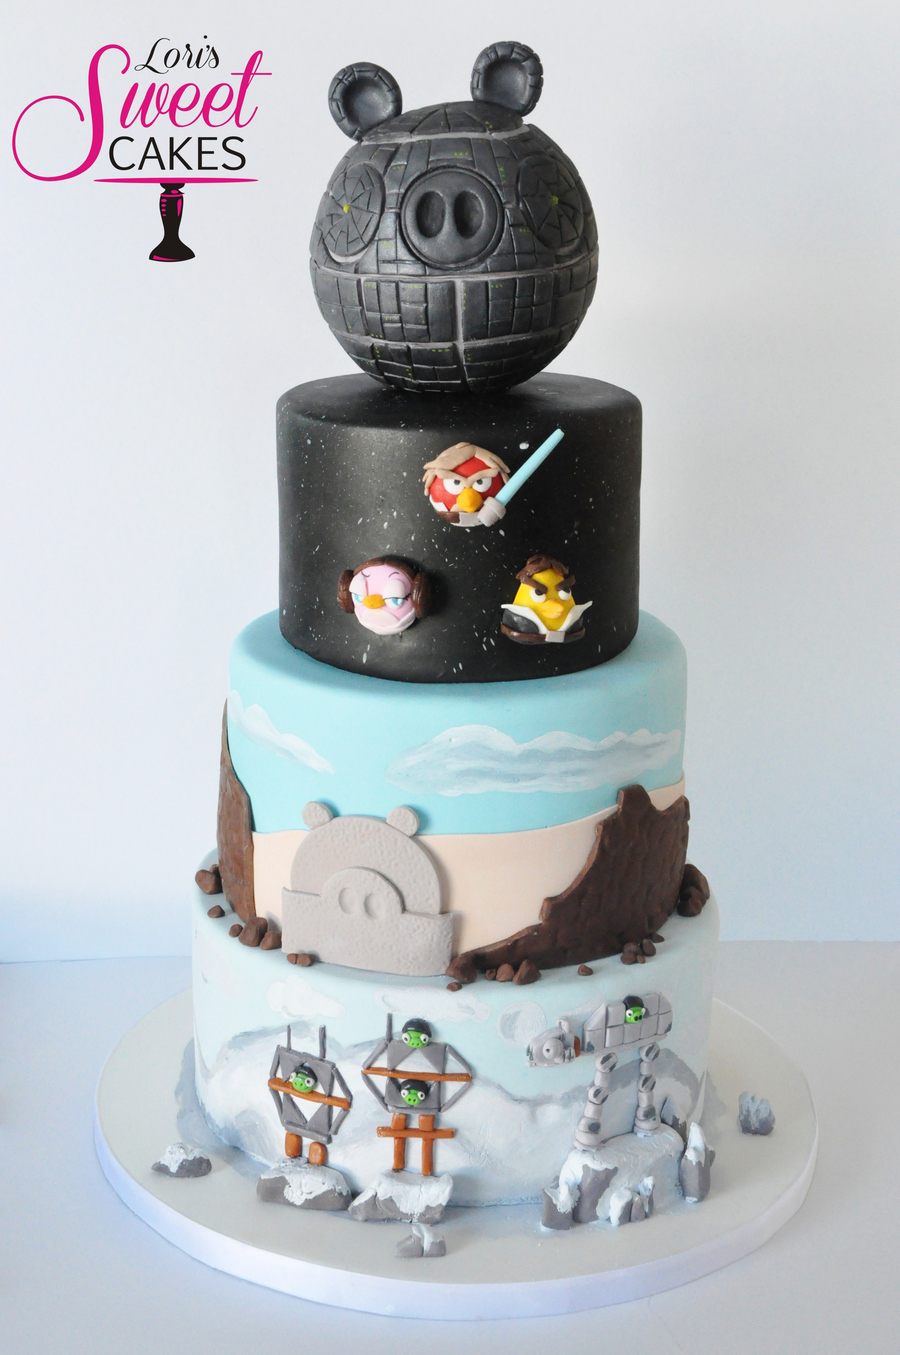 My Sons Birthday Theme This Year Was Angry Birds Star Wars His Attention To Detail Is Remarkable For A 7 Year Old We Butted Heads A Few T on Cake Central